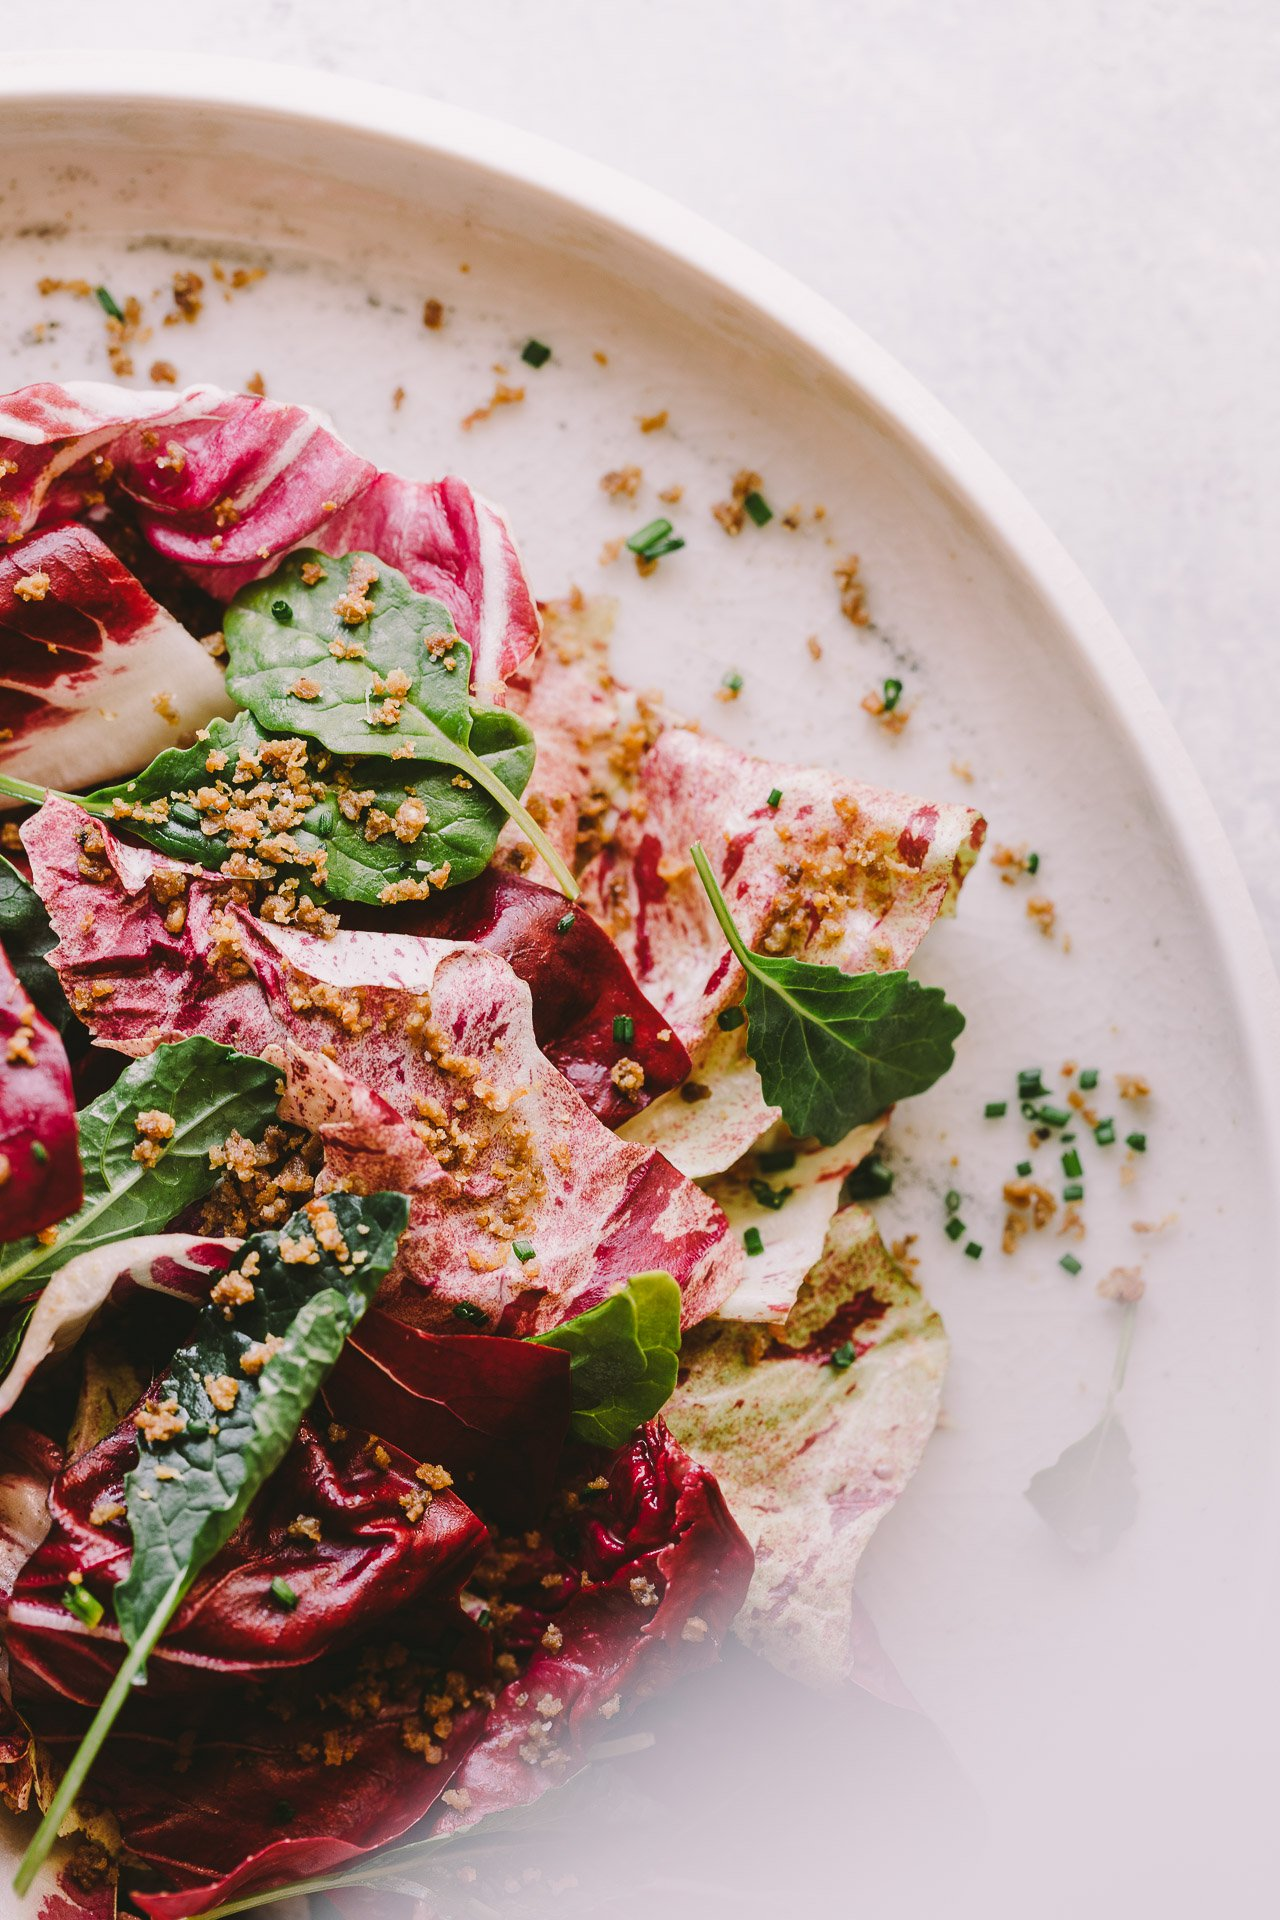 Chicories w/ Date Vinaigrette and Crispy Chicken Skin | Recipe from the Rich Table cookbook | Photography by HonestlyYUM